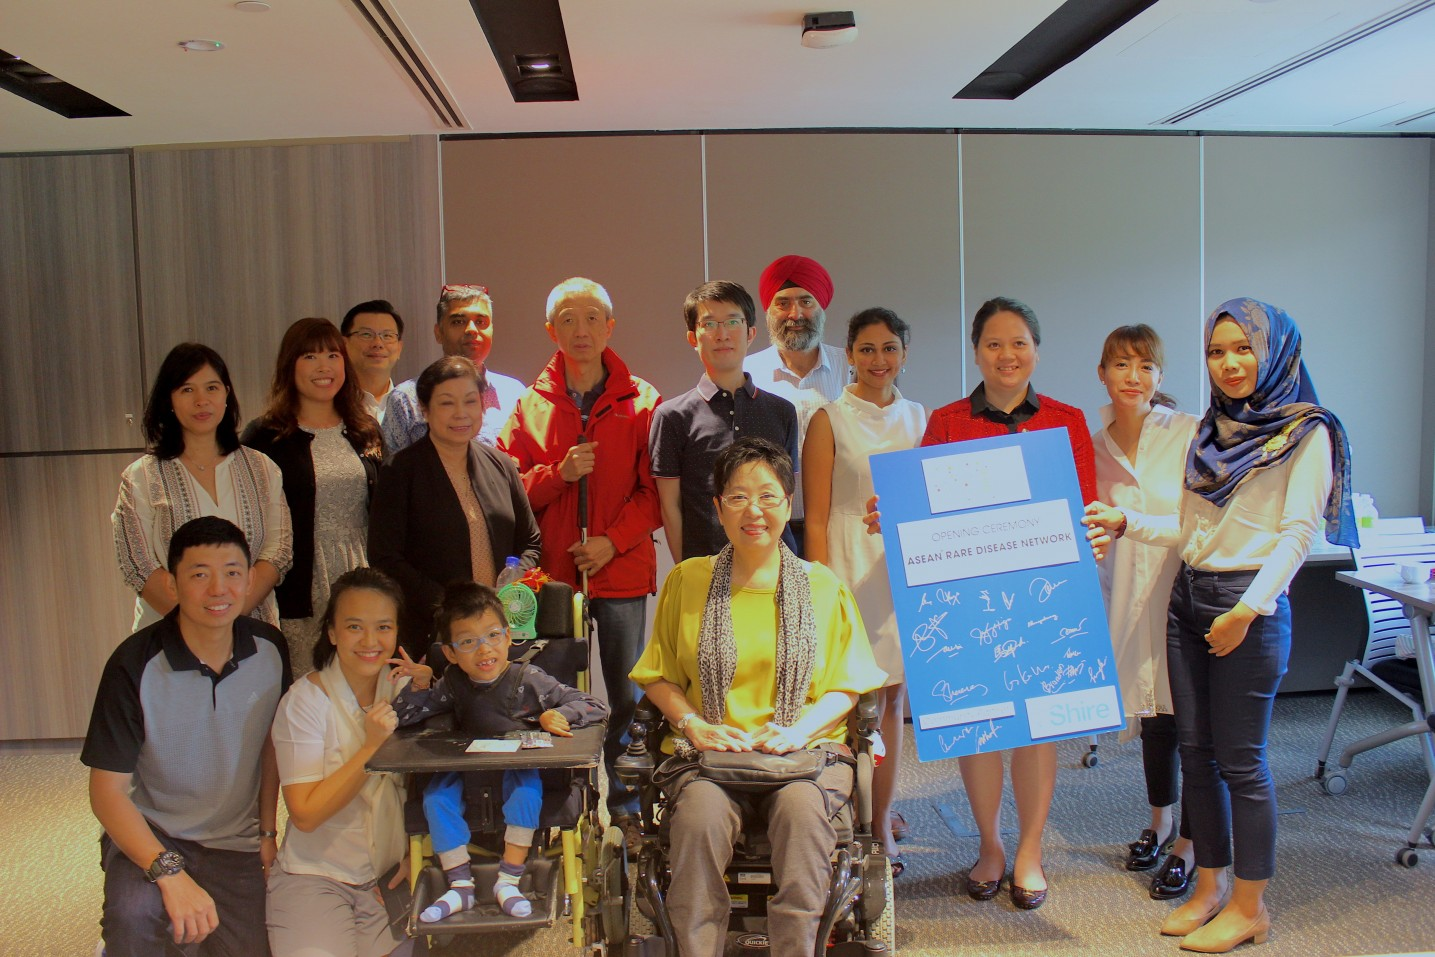 ASEAN+ Rare Disease Network